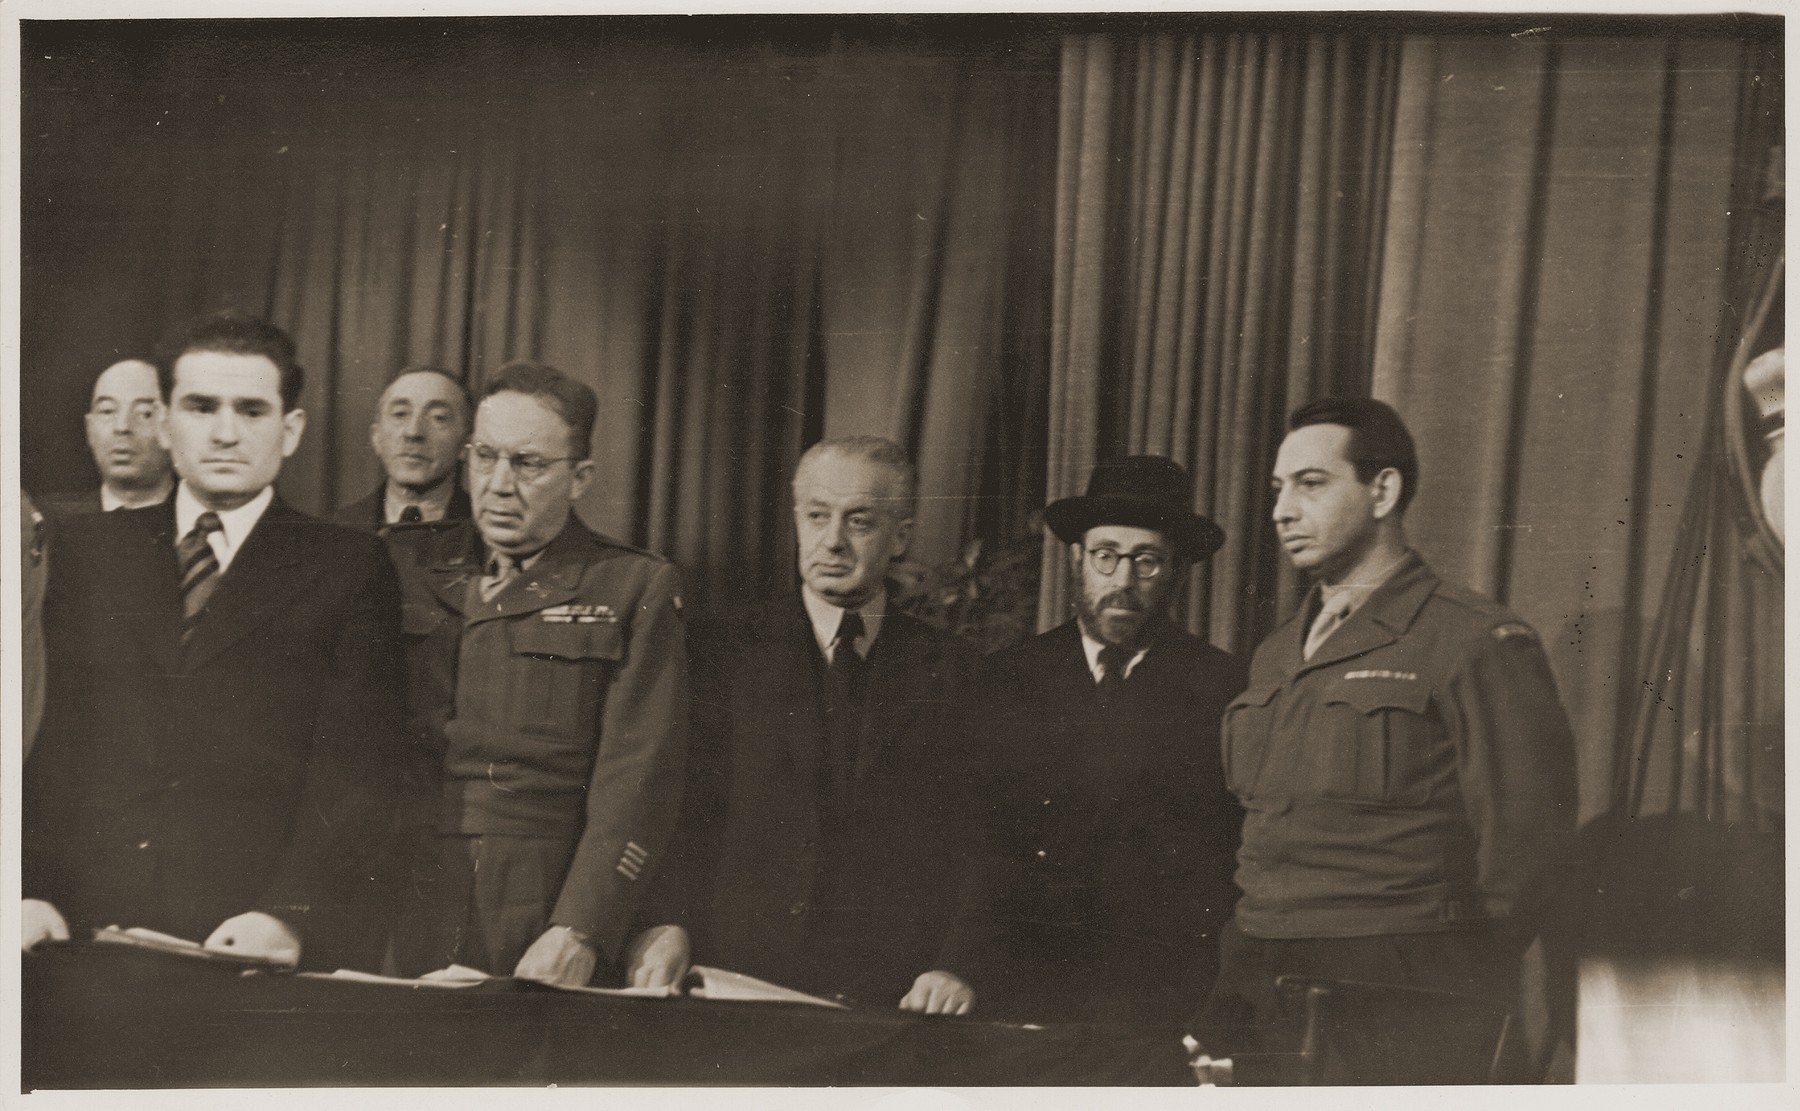 Group portrait of DP leaders on the dias at a conference sponsored by the Central Committee of the Liberated Jews in the U.S. Zone of Germany.   Among those pictured are Leo Schwarz (far right); Rabbi Samuel Snieg (next to Schwarz); and Leon Retter (front, left).